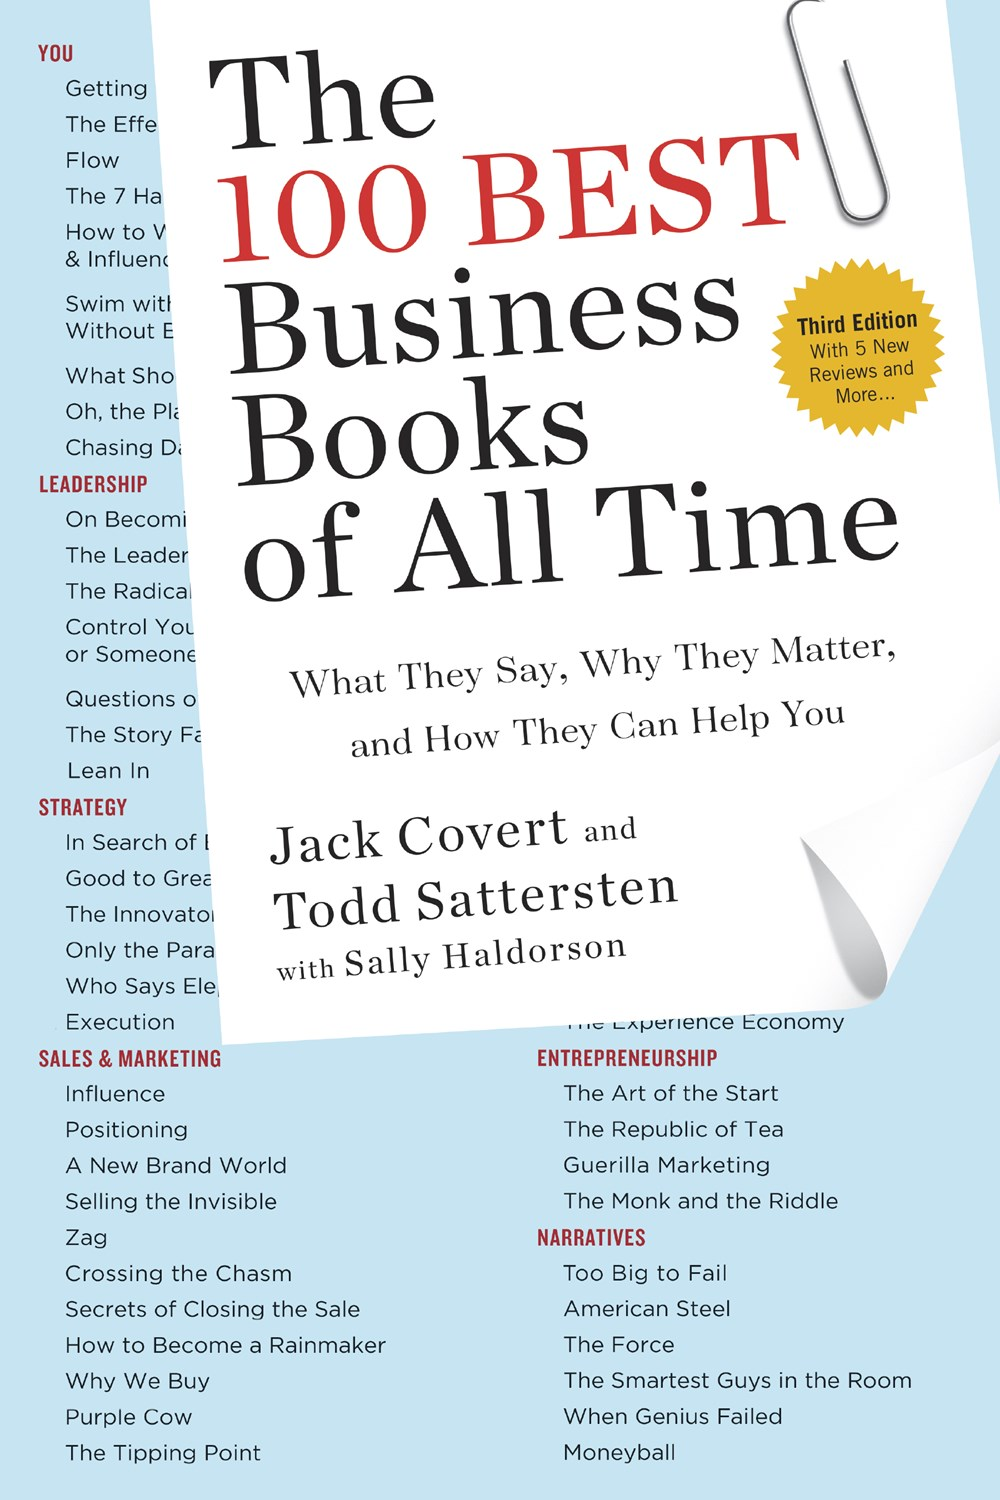 100 Best Business Books of All Time What They Say, Why They Matter, and How They Can Help You (Updat